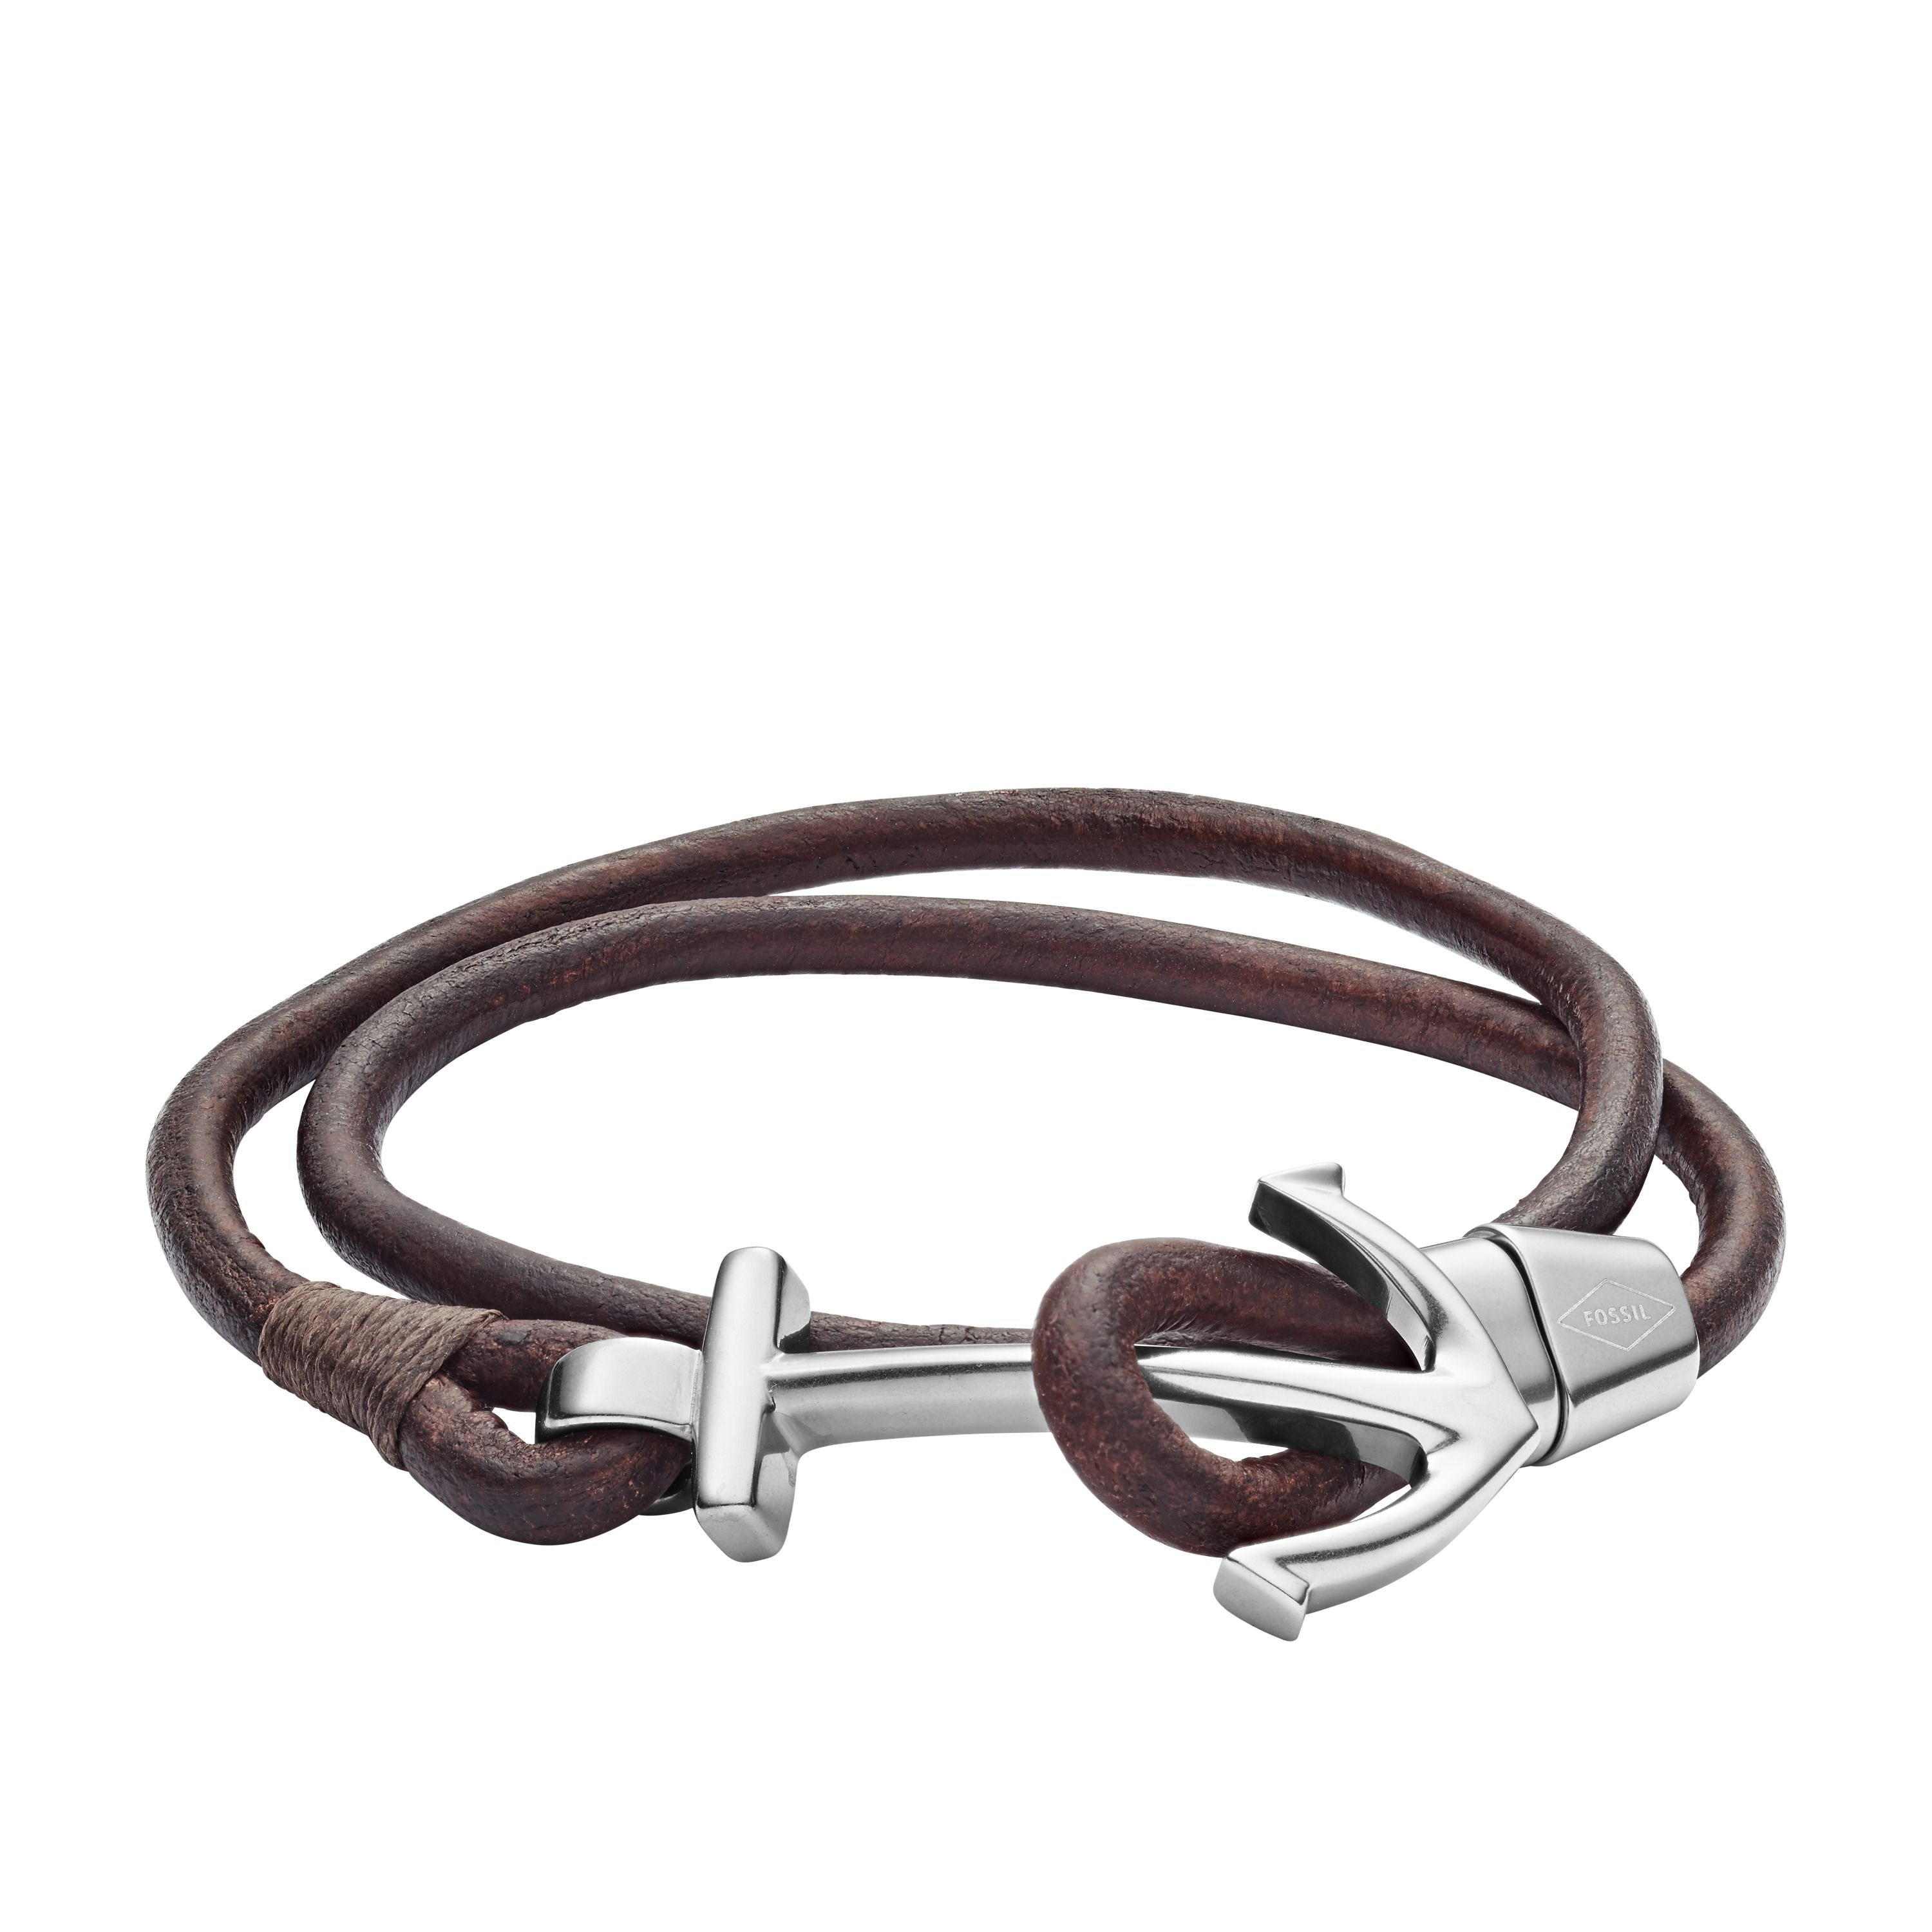 Fossil Anchor Brown Leather Wrist Wrap Bracelet, Brown